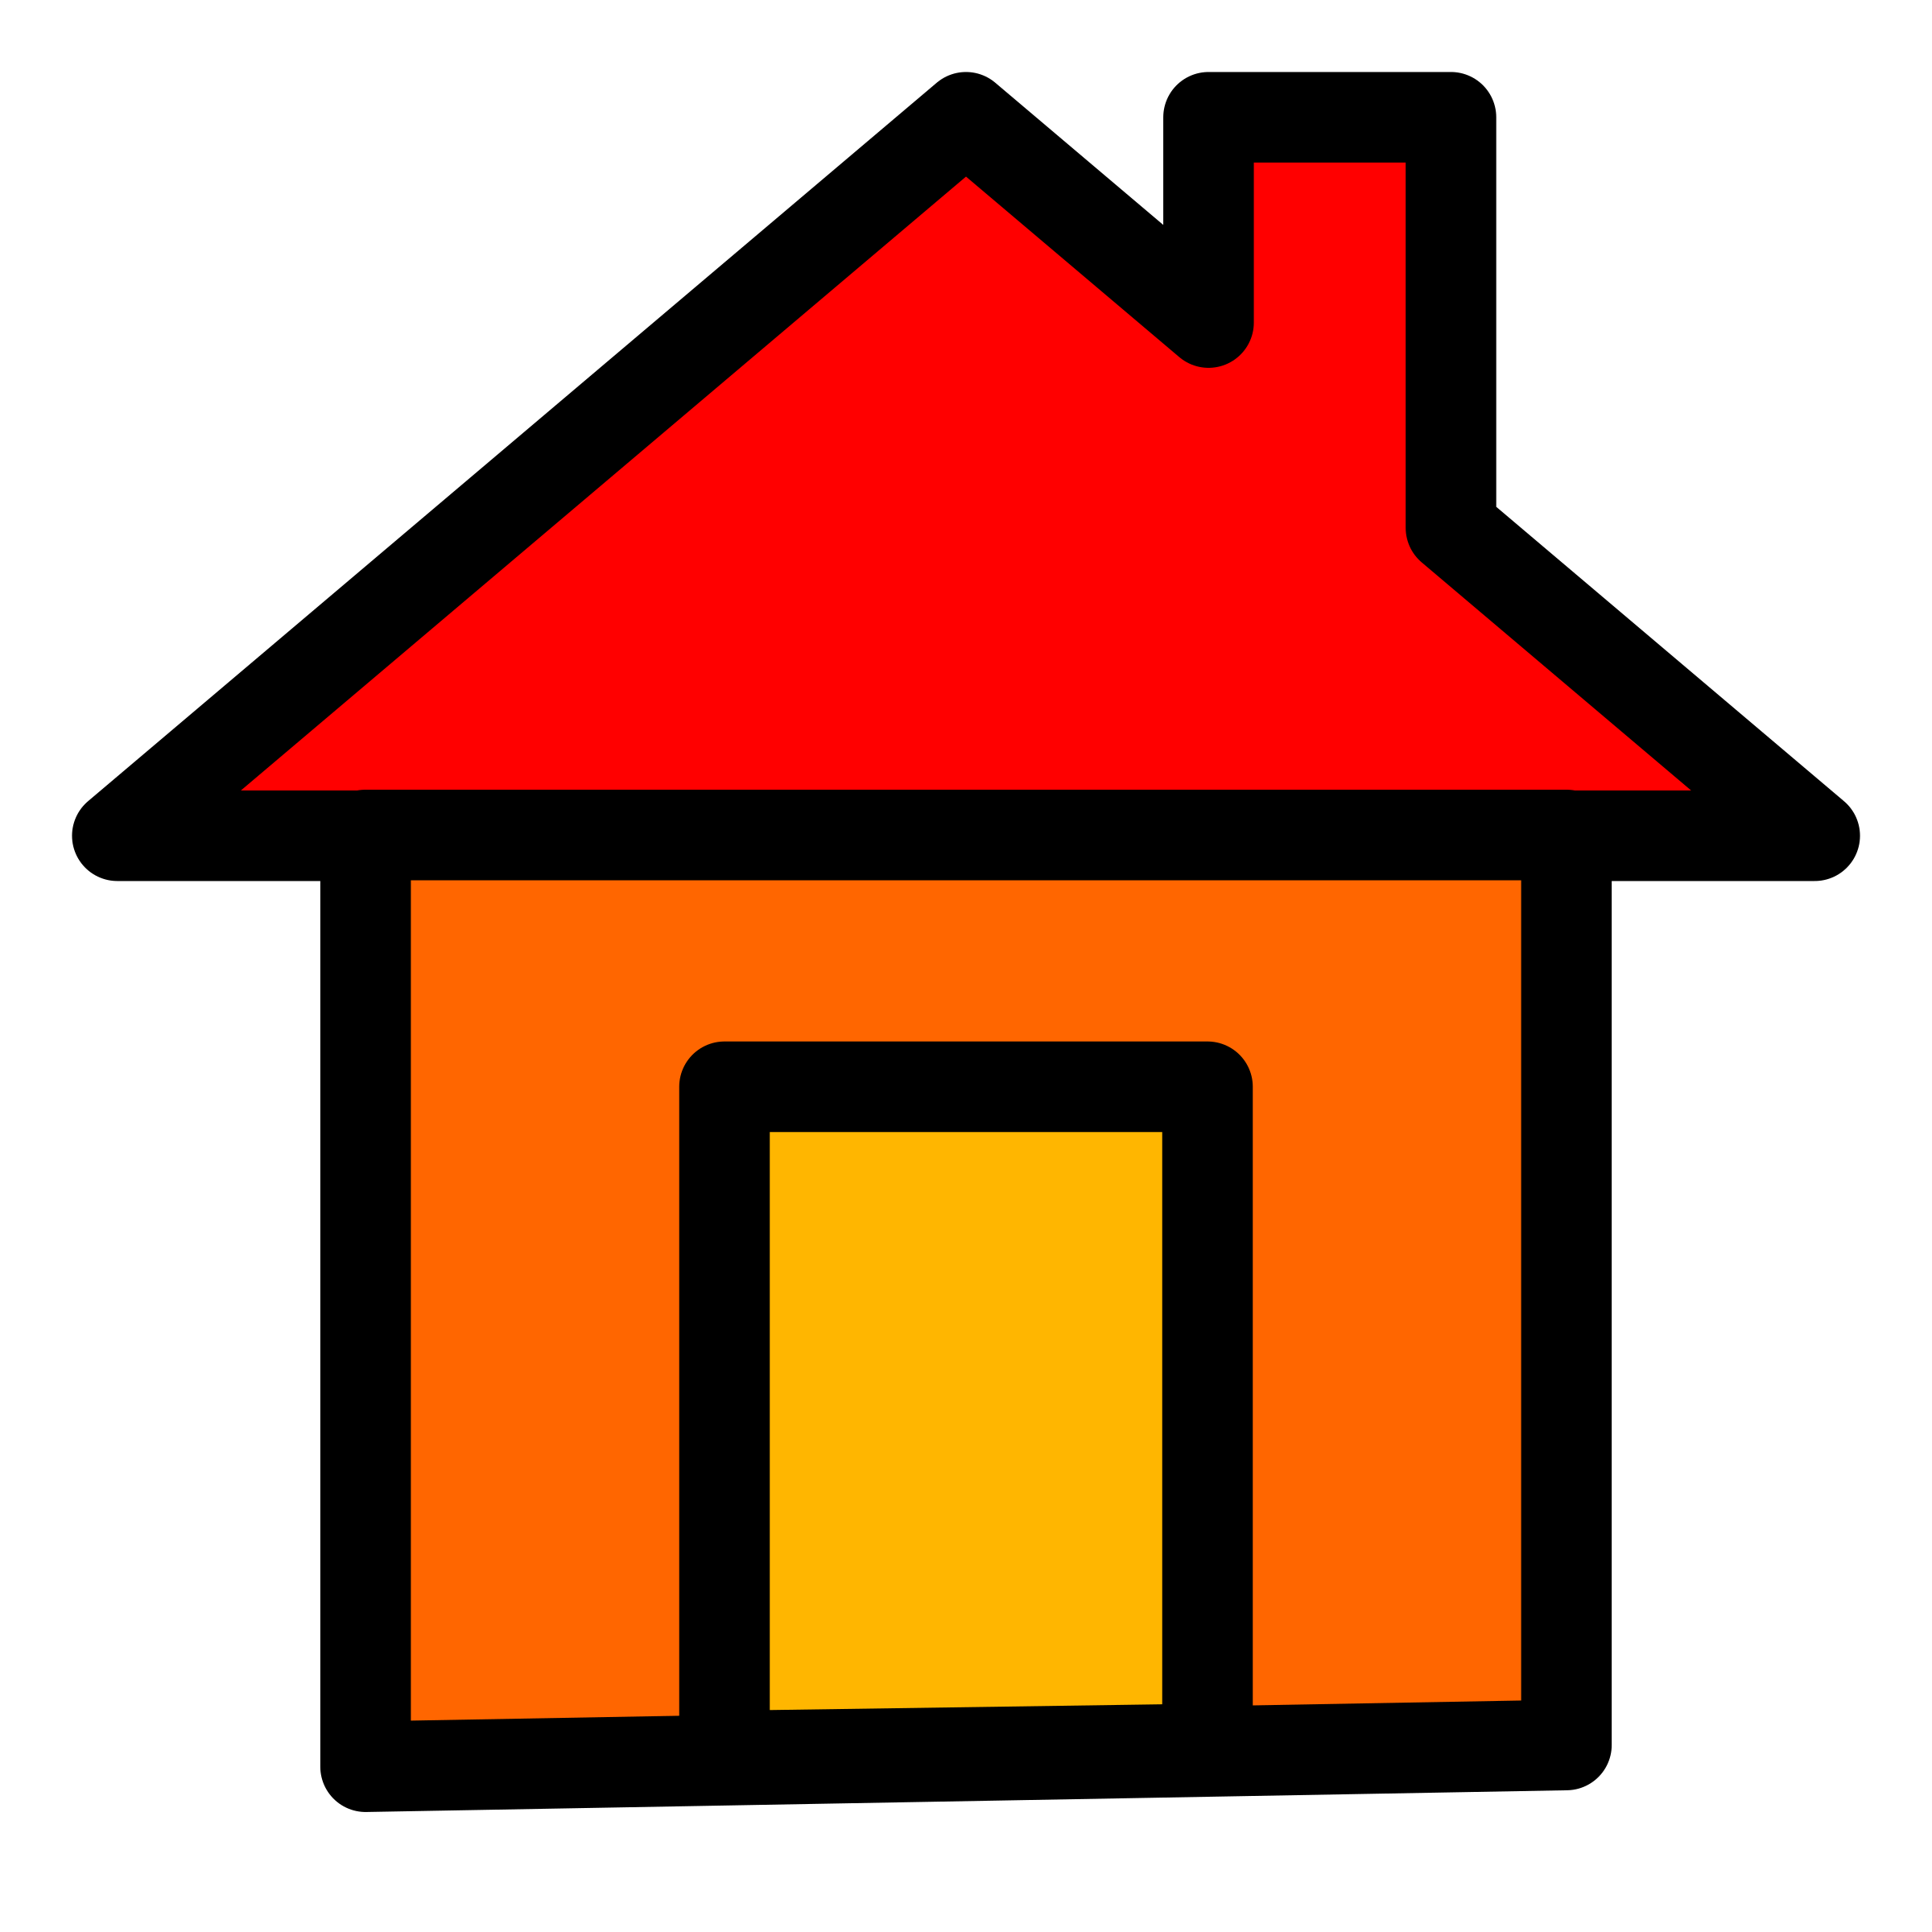 Home icon by pitr